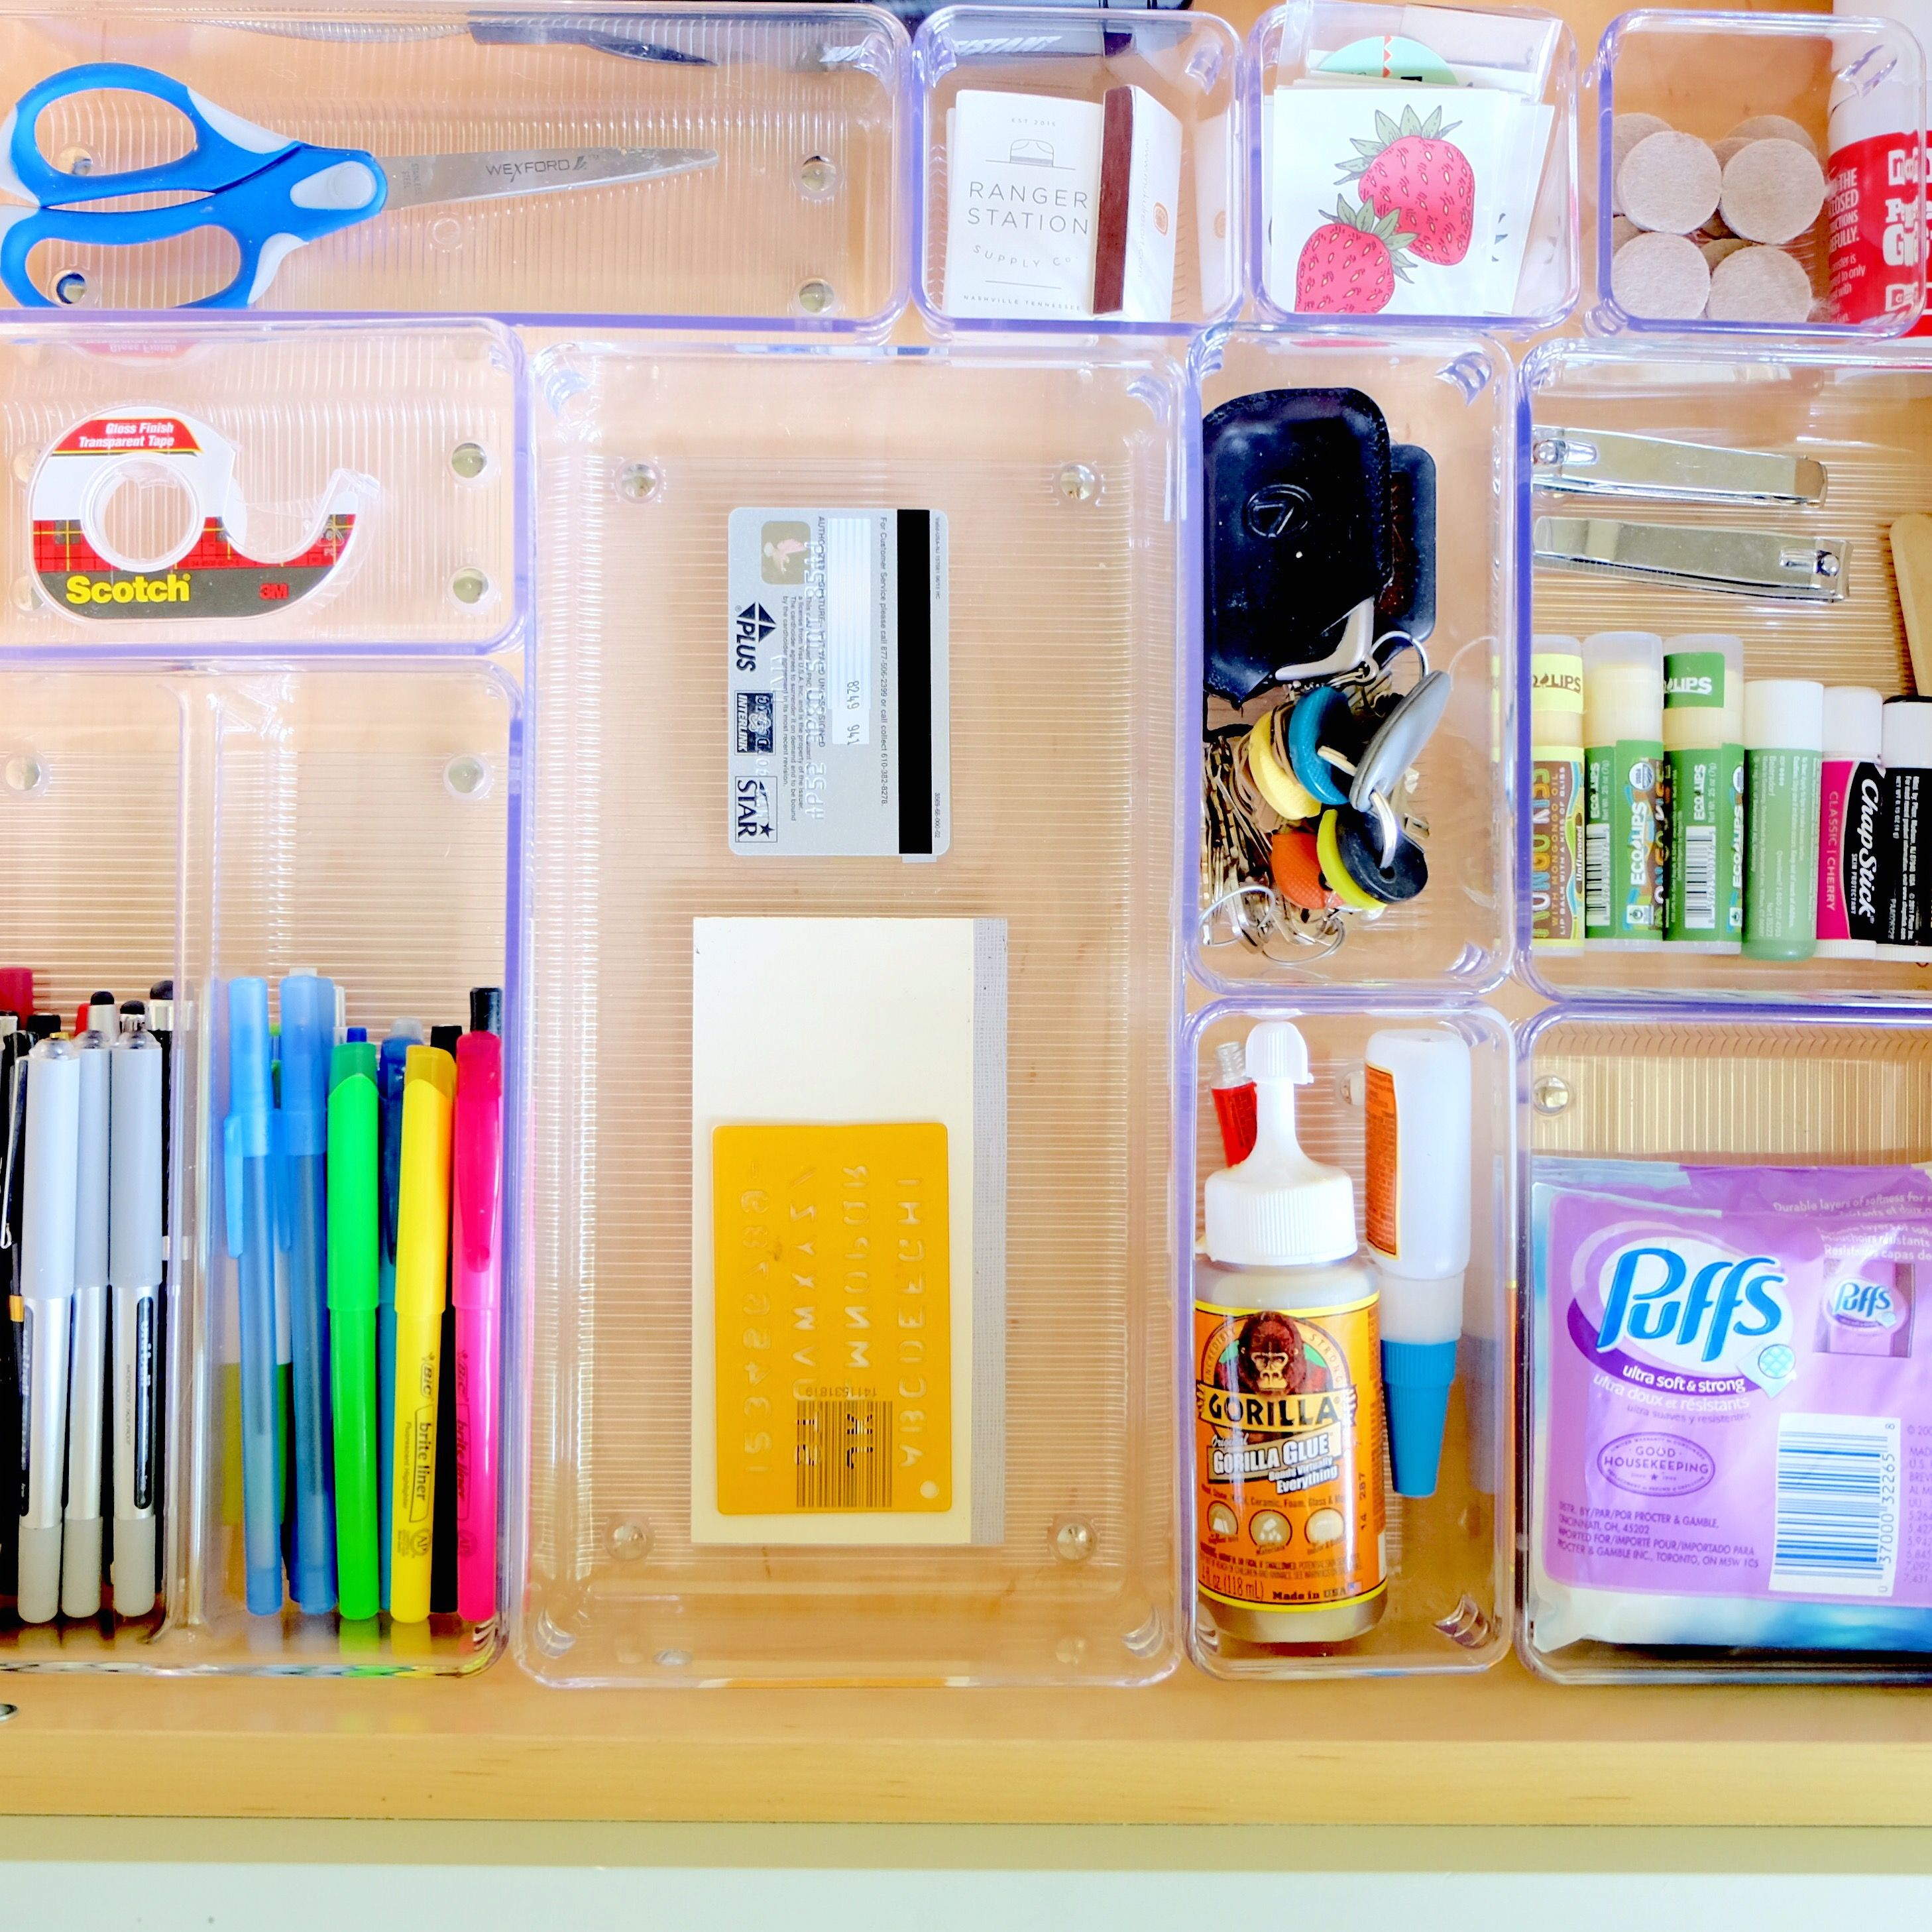 kitchen pencil use organized budget your on of drawers organizing pens drawer dollar part keep desk blog to pencils store video organization organizers a utensil